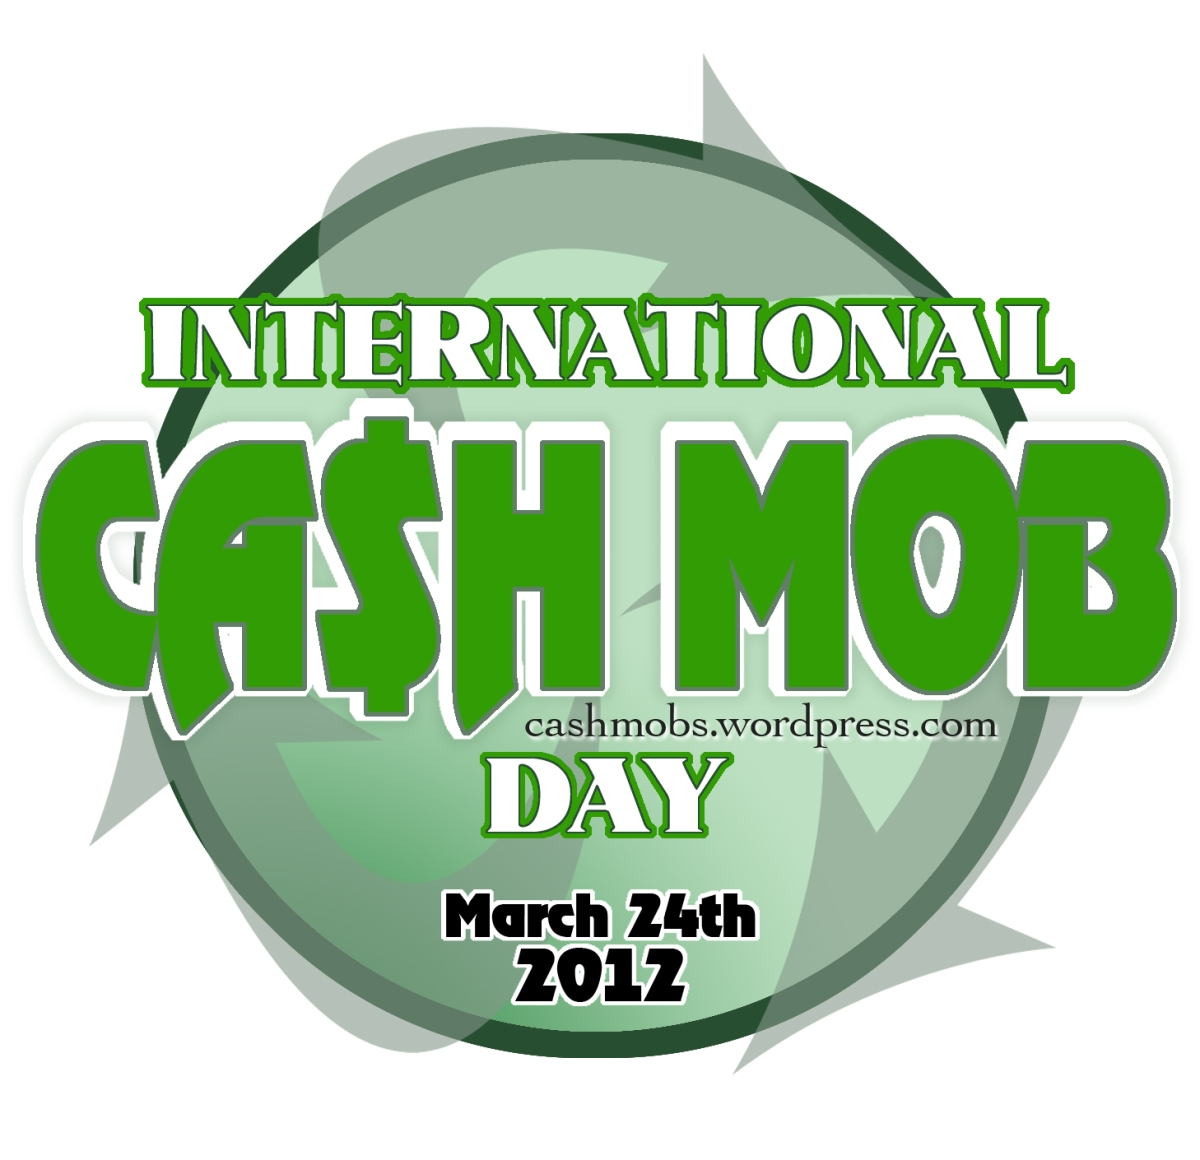 International Cash Mob Day